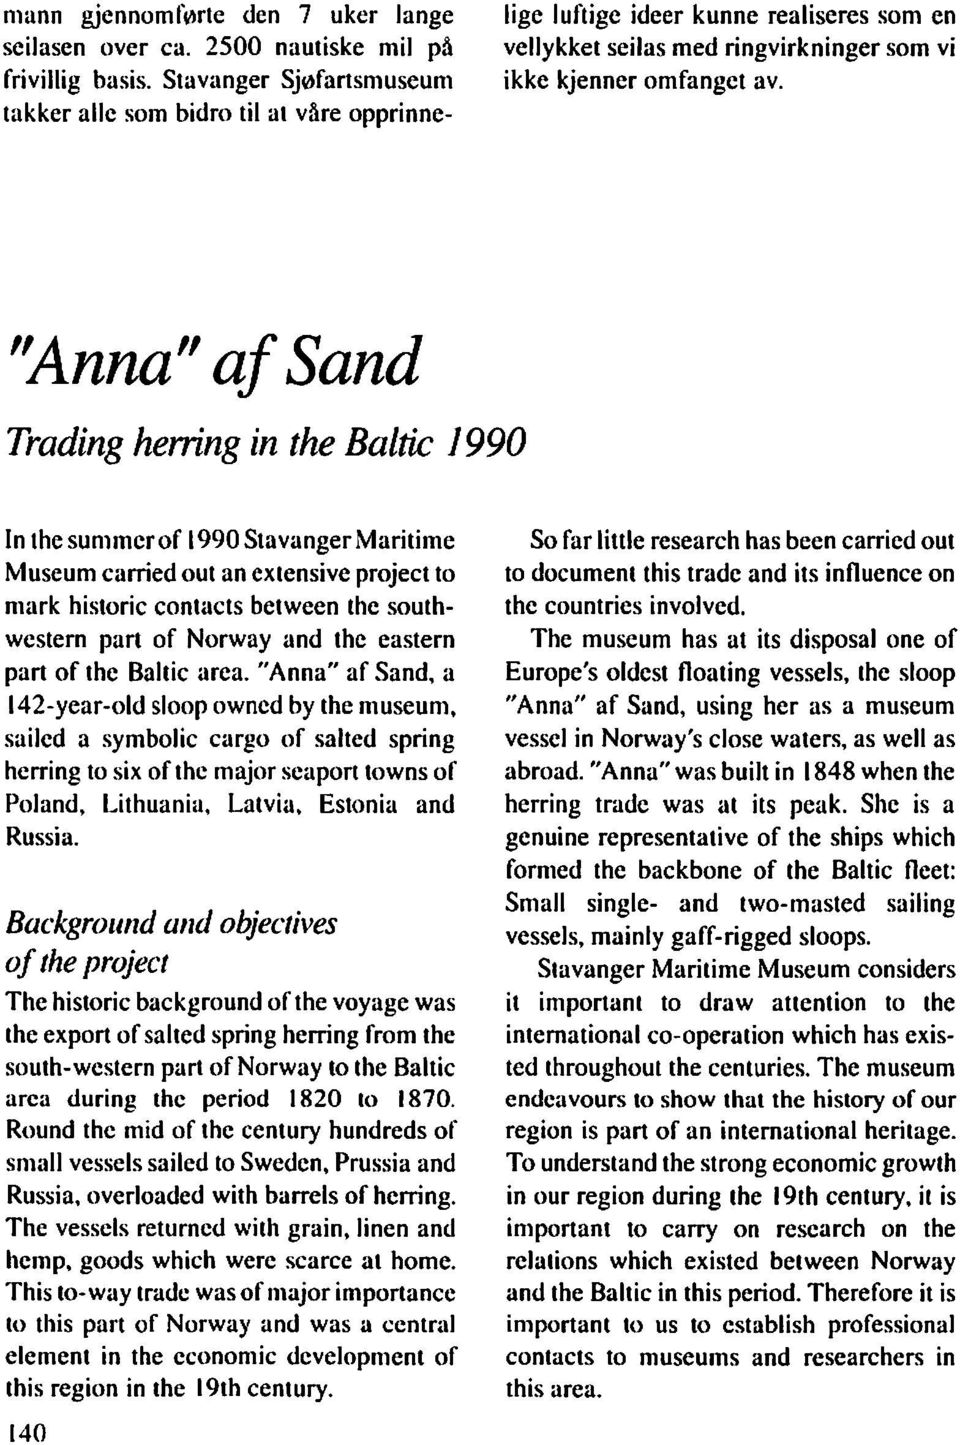 ''Anna'' aj Sand Trading herring in the Baltie J 990 In the summerof 1990 Stavanger Maritime Museum carried out an extensive project to mark historie contacts between the southwestern part of Norway